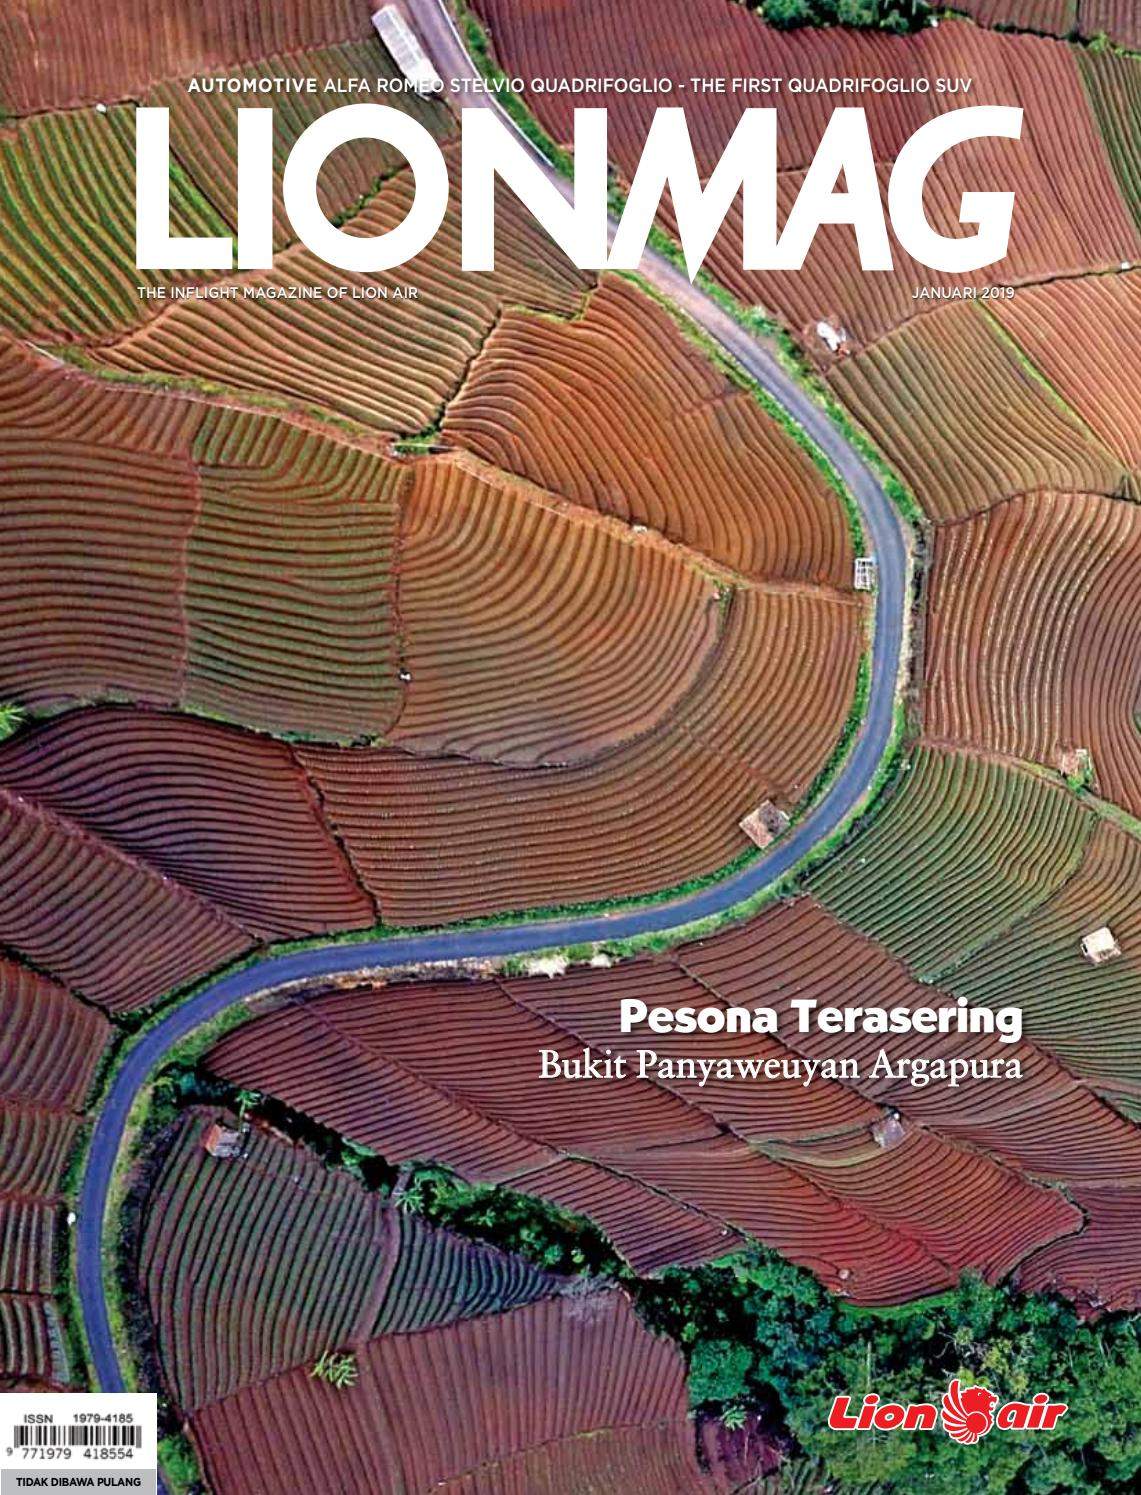 LIONMAG JANUARI 2019 By Bentang Media Nusantara Issuu